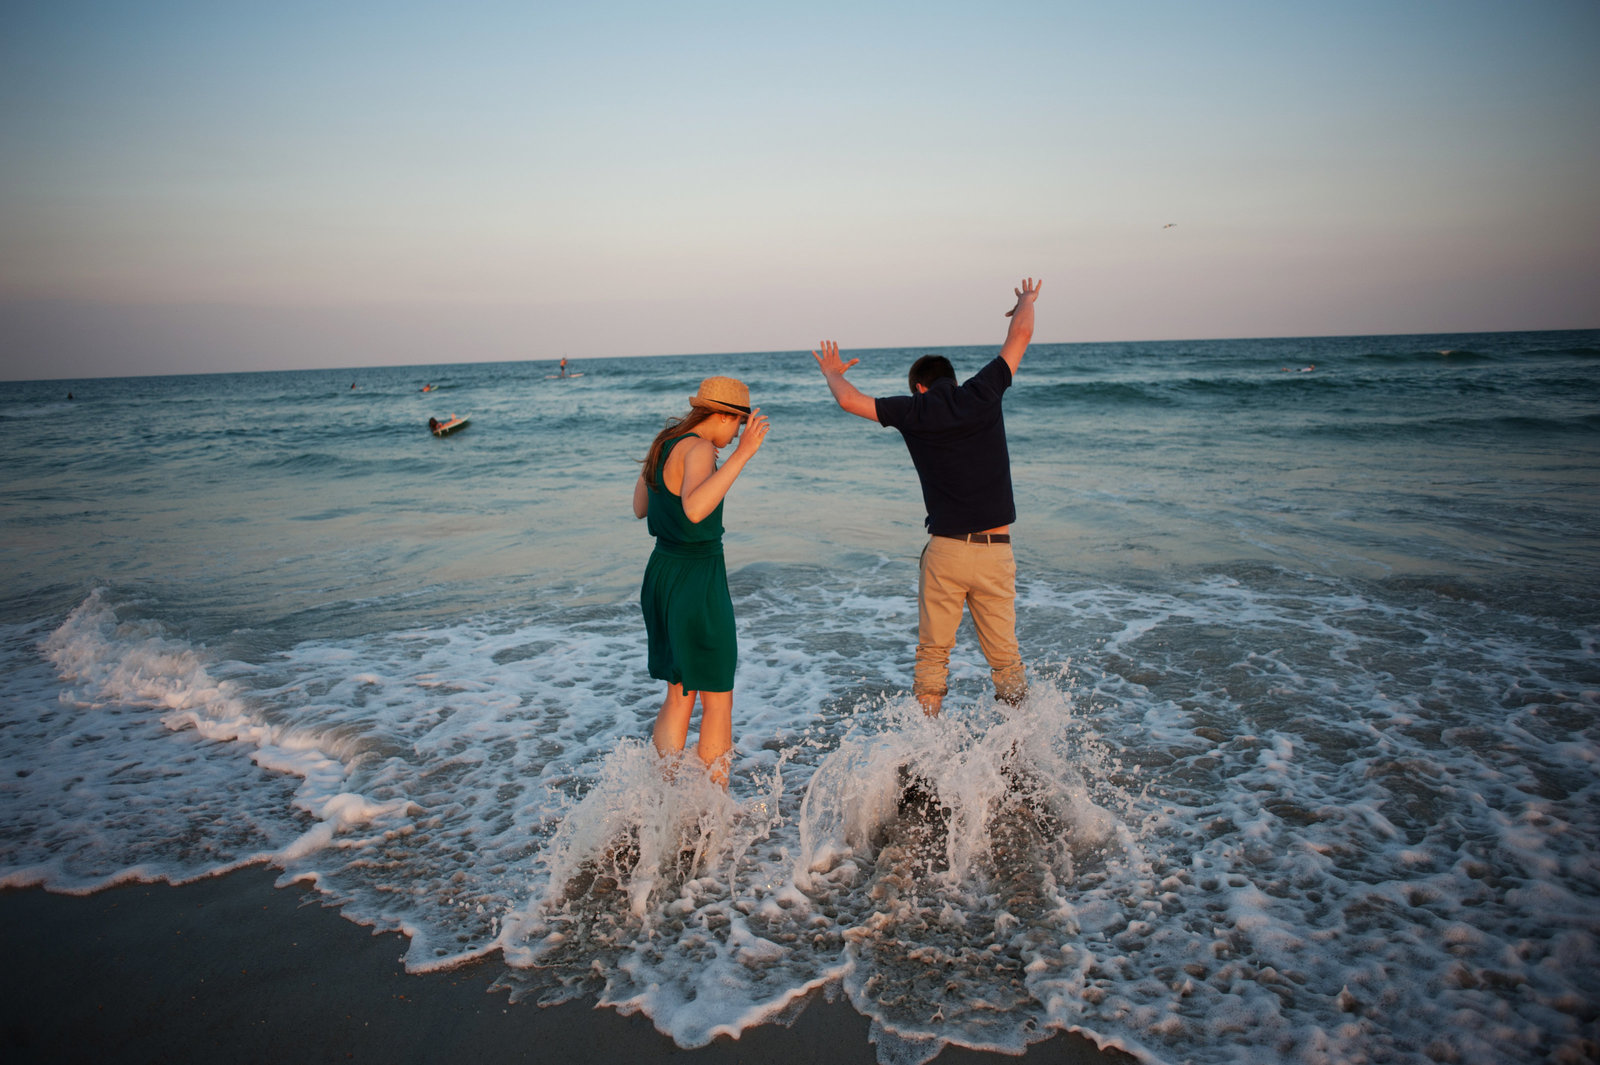 an engaged couple get too close to the ocean and get wet